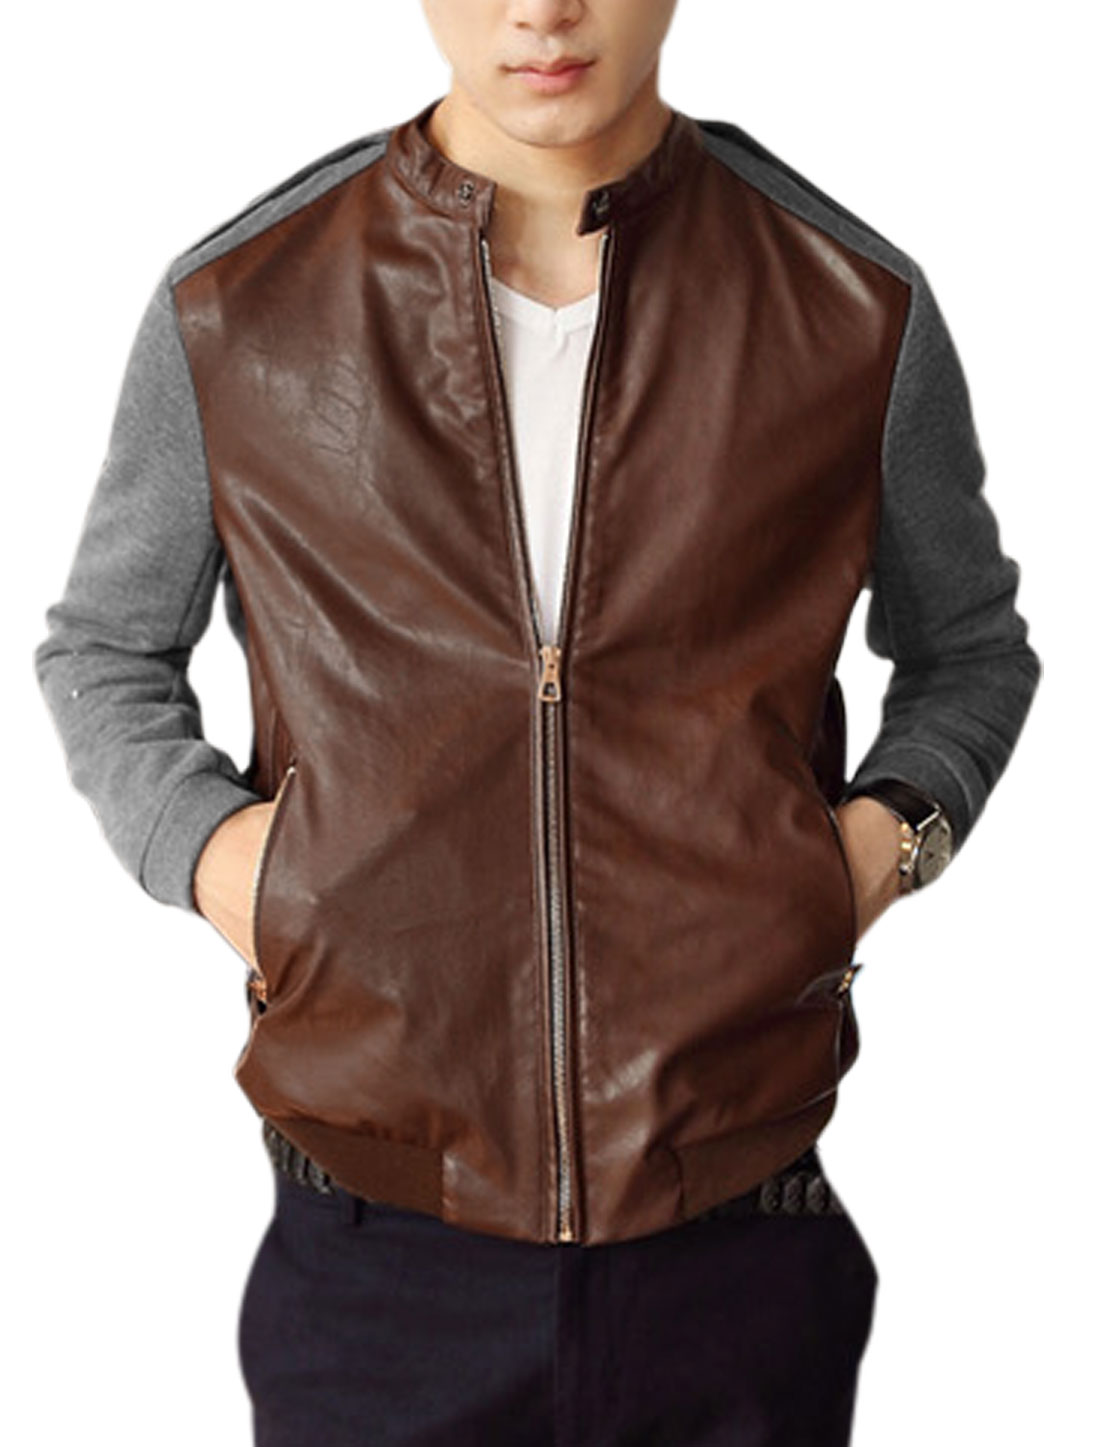 Men Fashion Style Contrast Color Imitation Leather Panel Jacket Brown Gray M